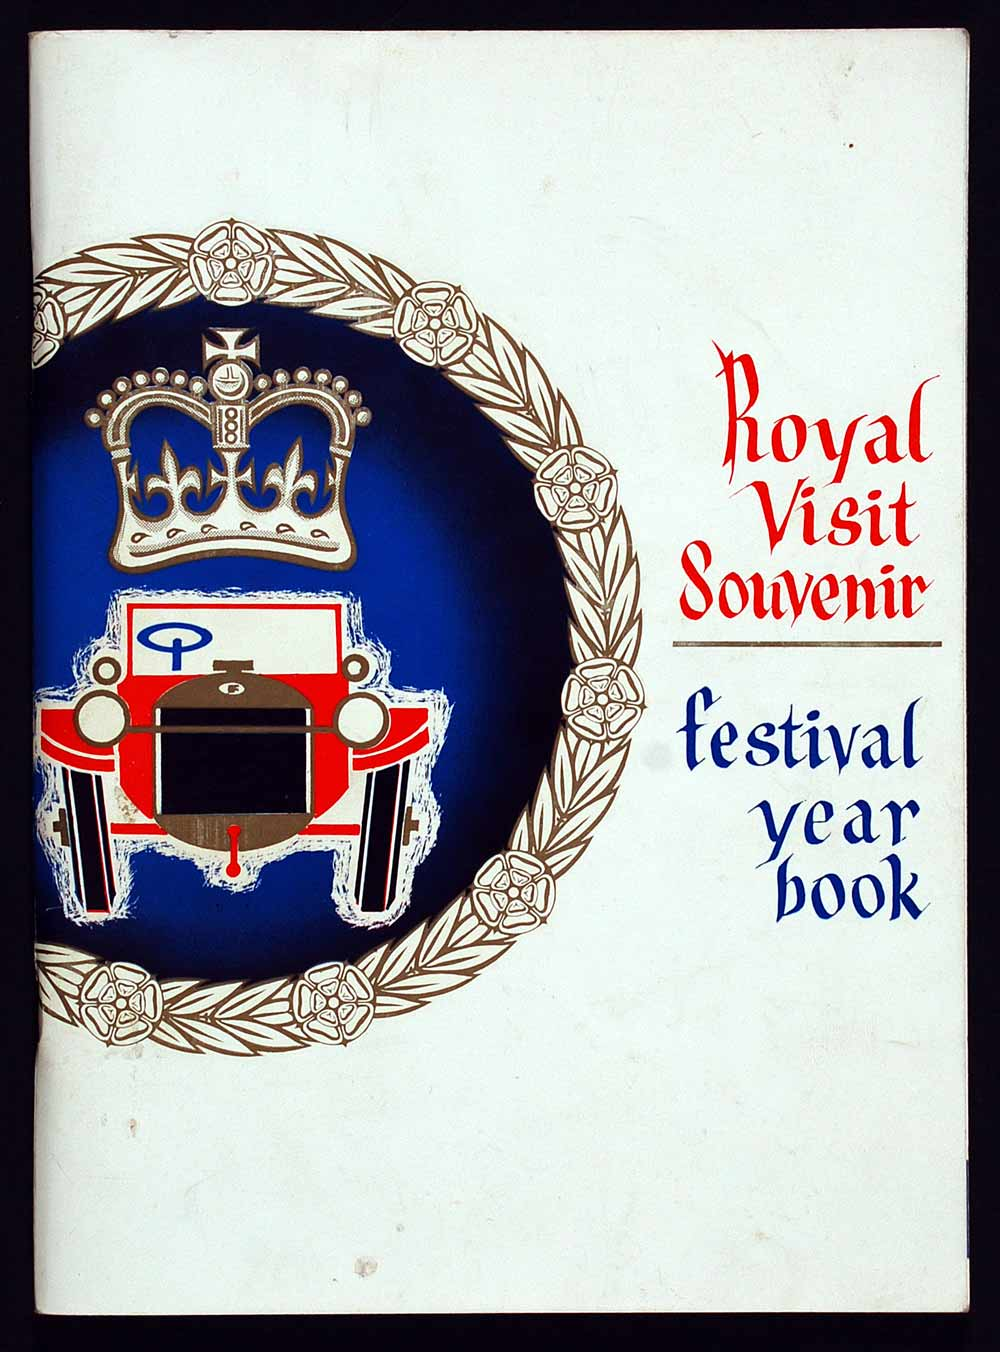 Royal visit souvenir; festival year book. Dunedin: John McIndoe and Otago Daily Times & Witness Newspapers Co. Ltd., 1963.